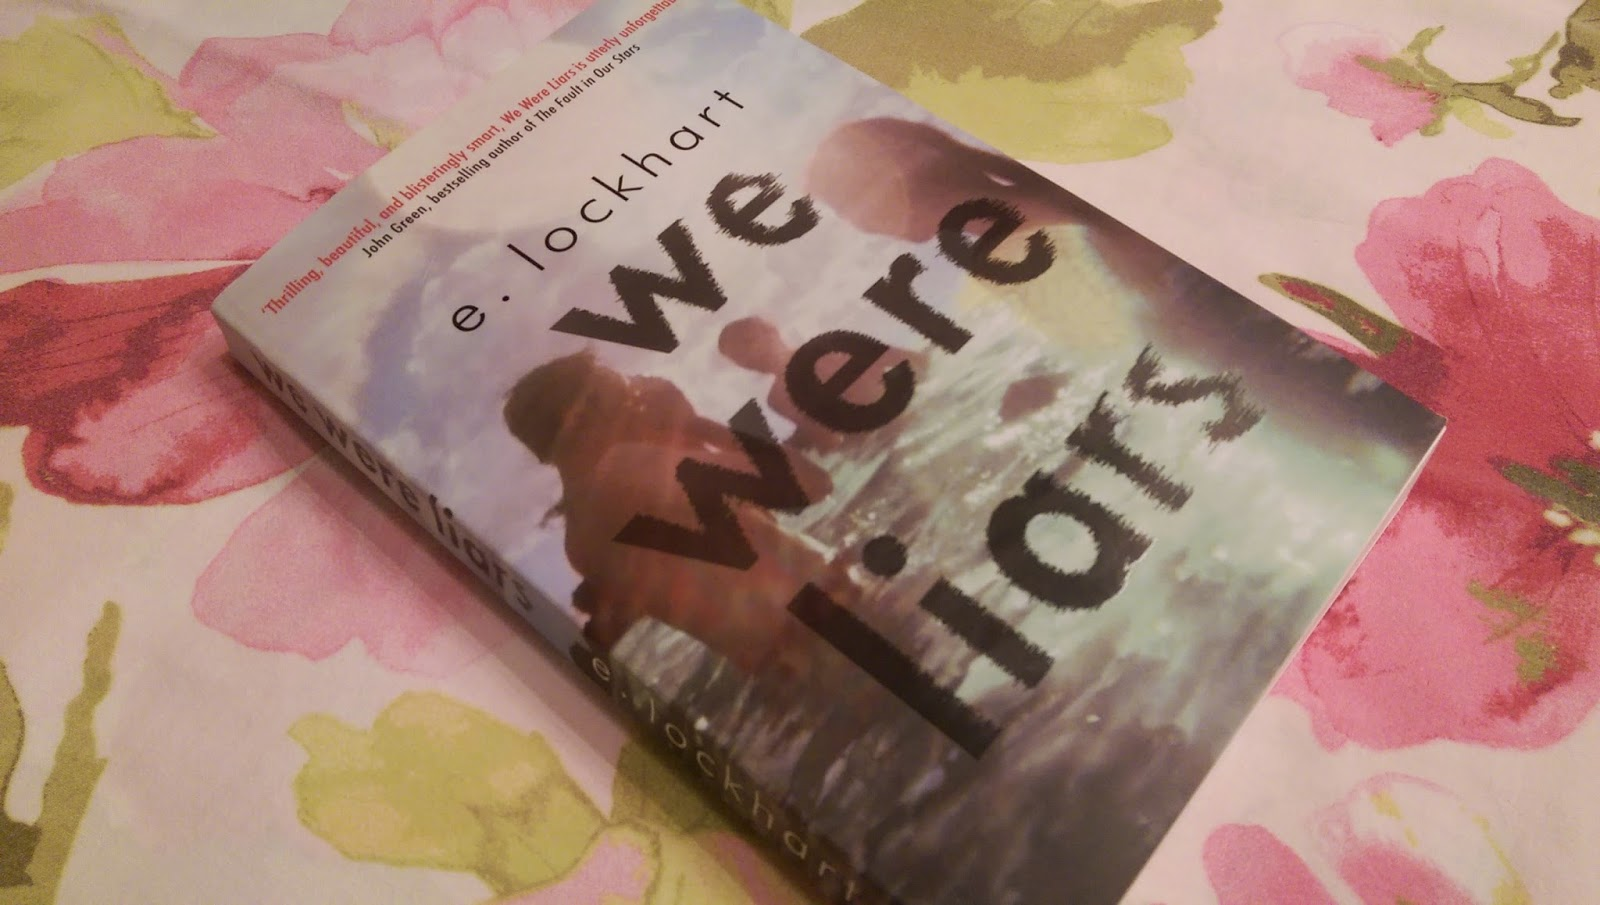 E. Lockhart - We were liars